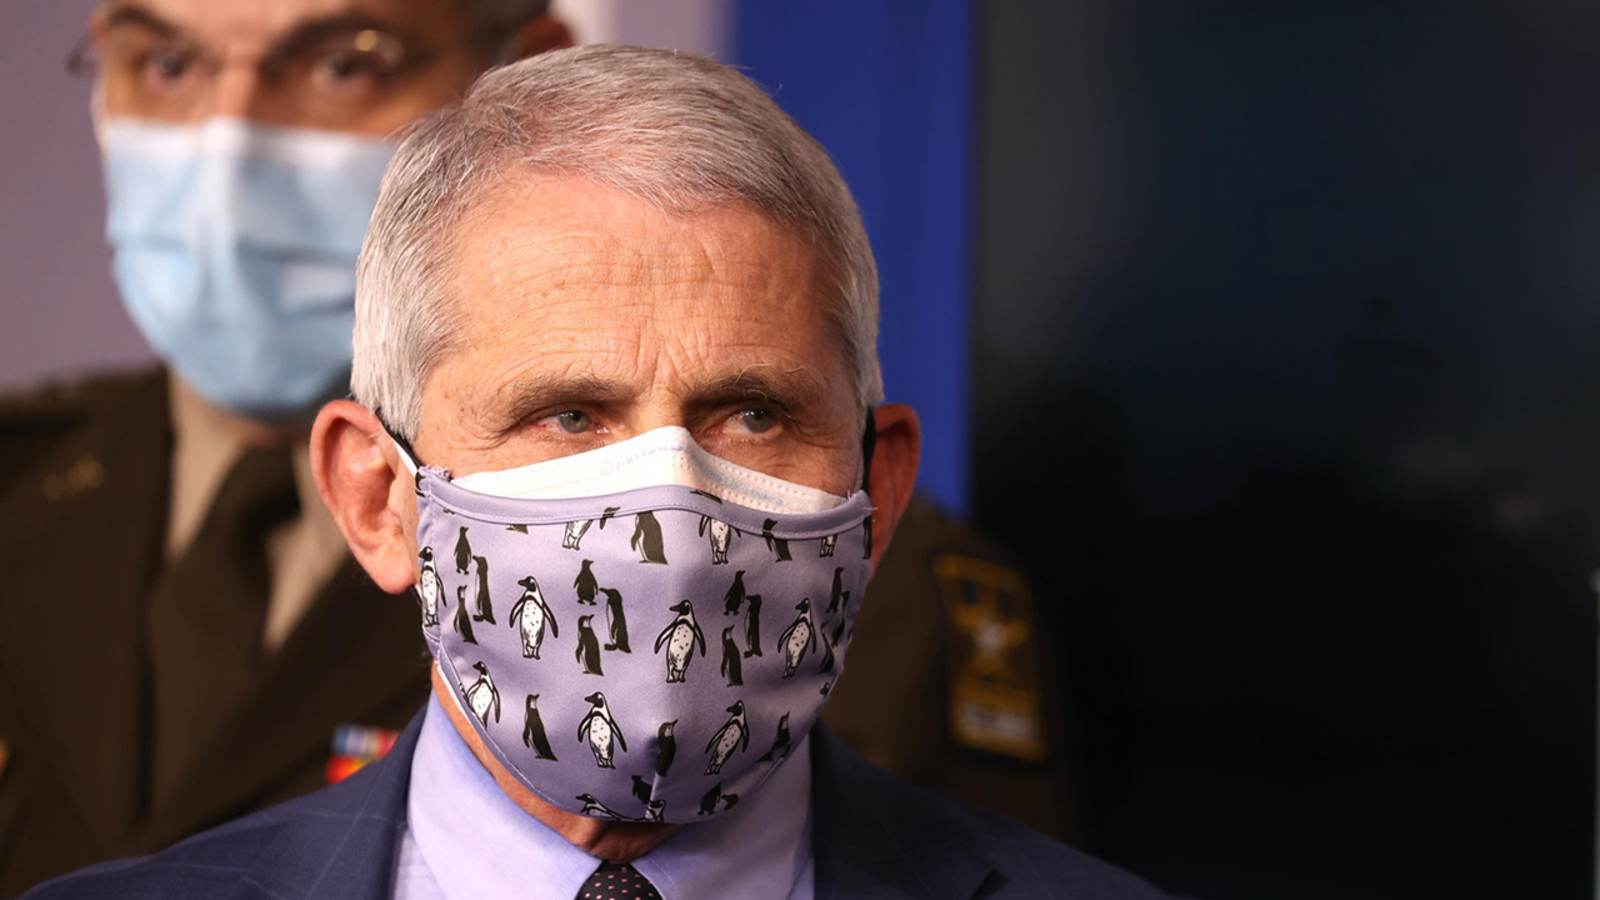 Fauci: 'Possible' Americans will be wearing masks in 2022 to protect against COVID-19